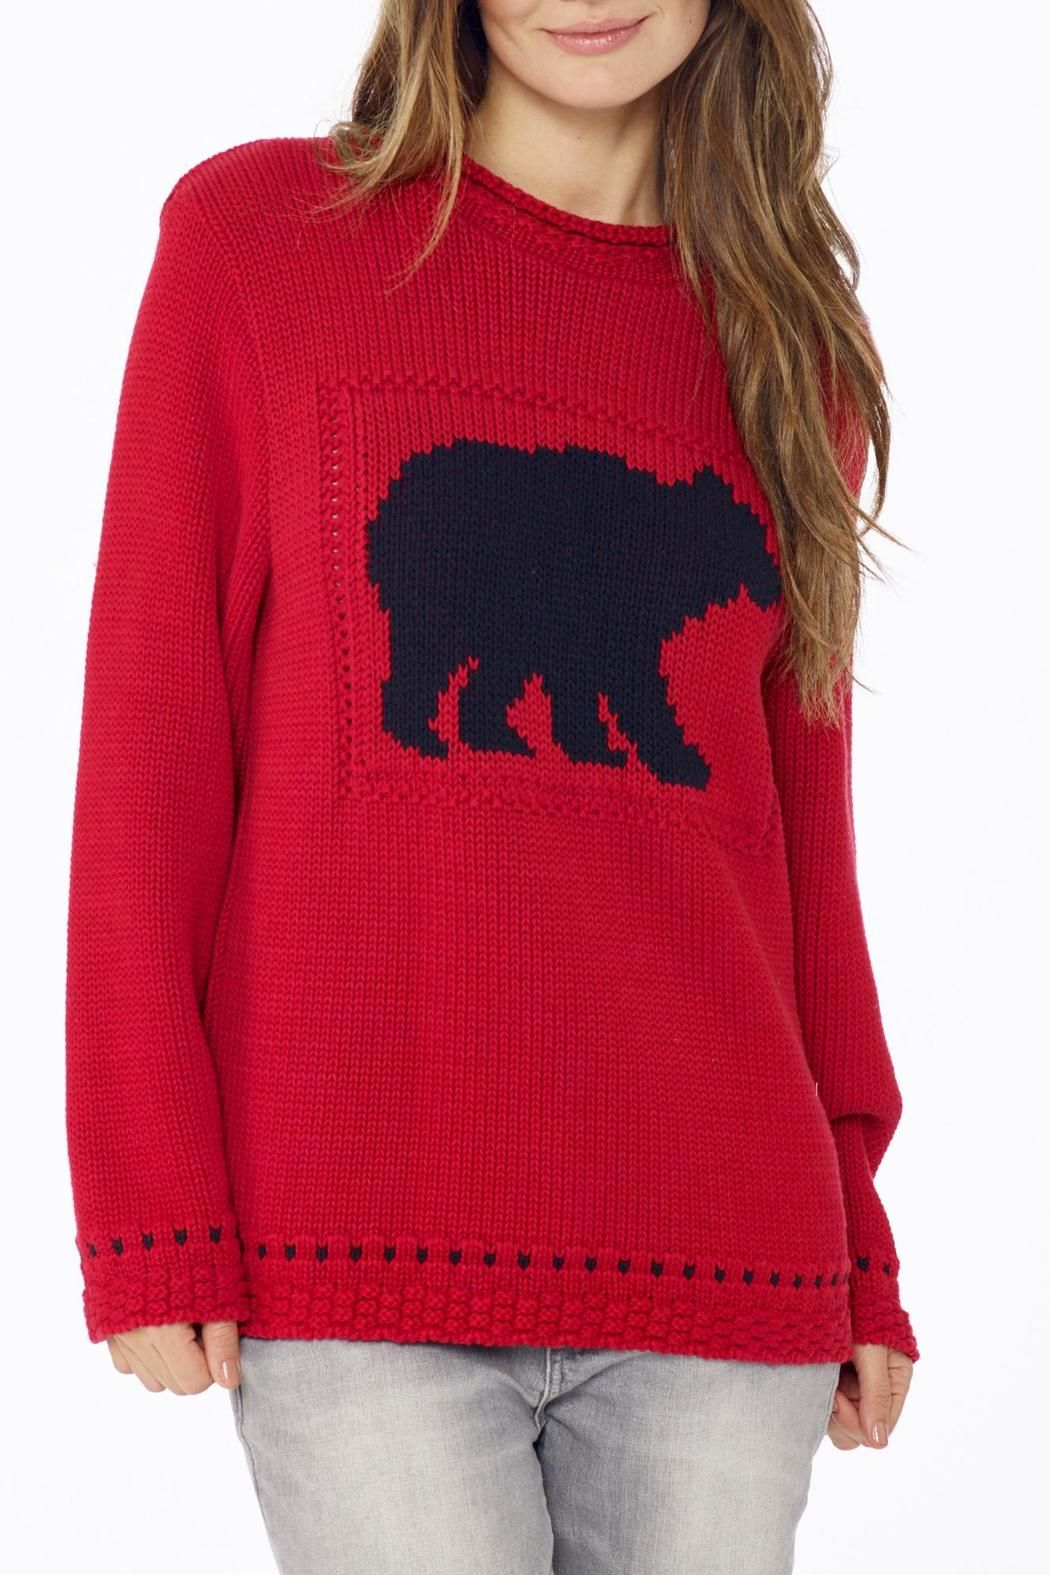 Cotton Country Catch a Bear Sweater | Red sweaters, Scoop neck and ...